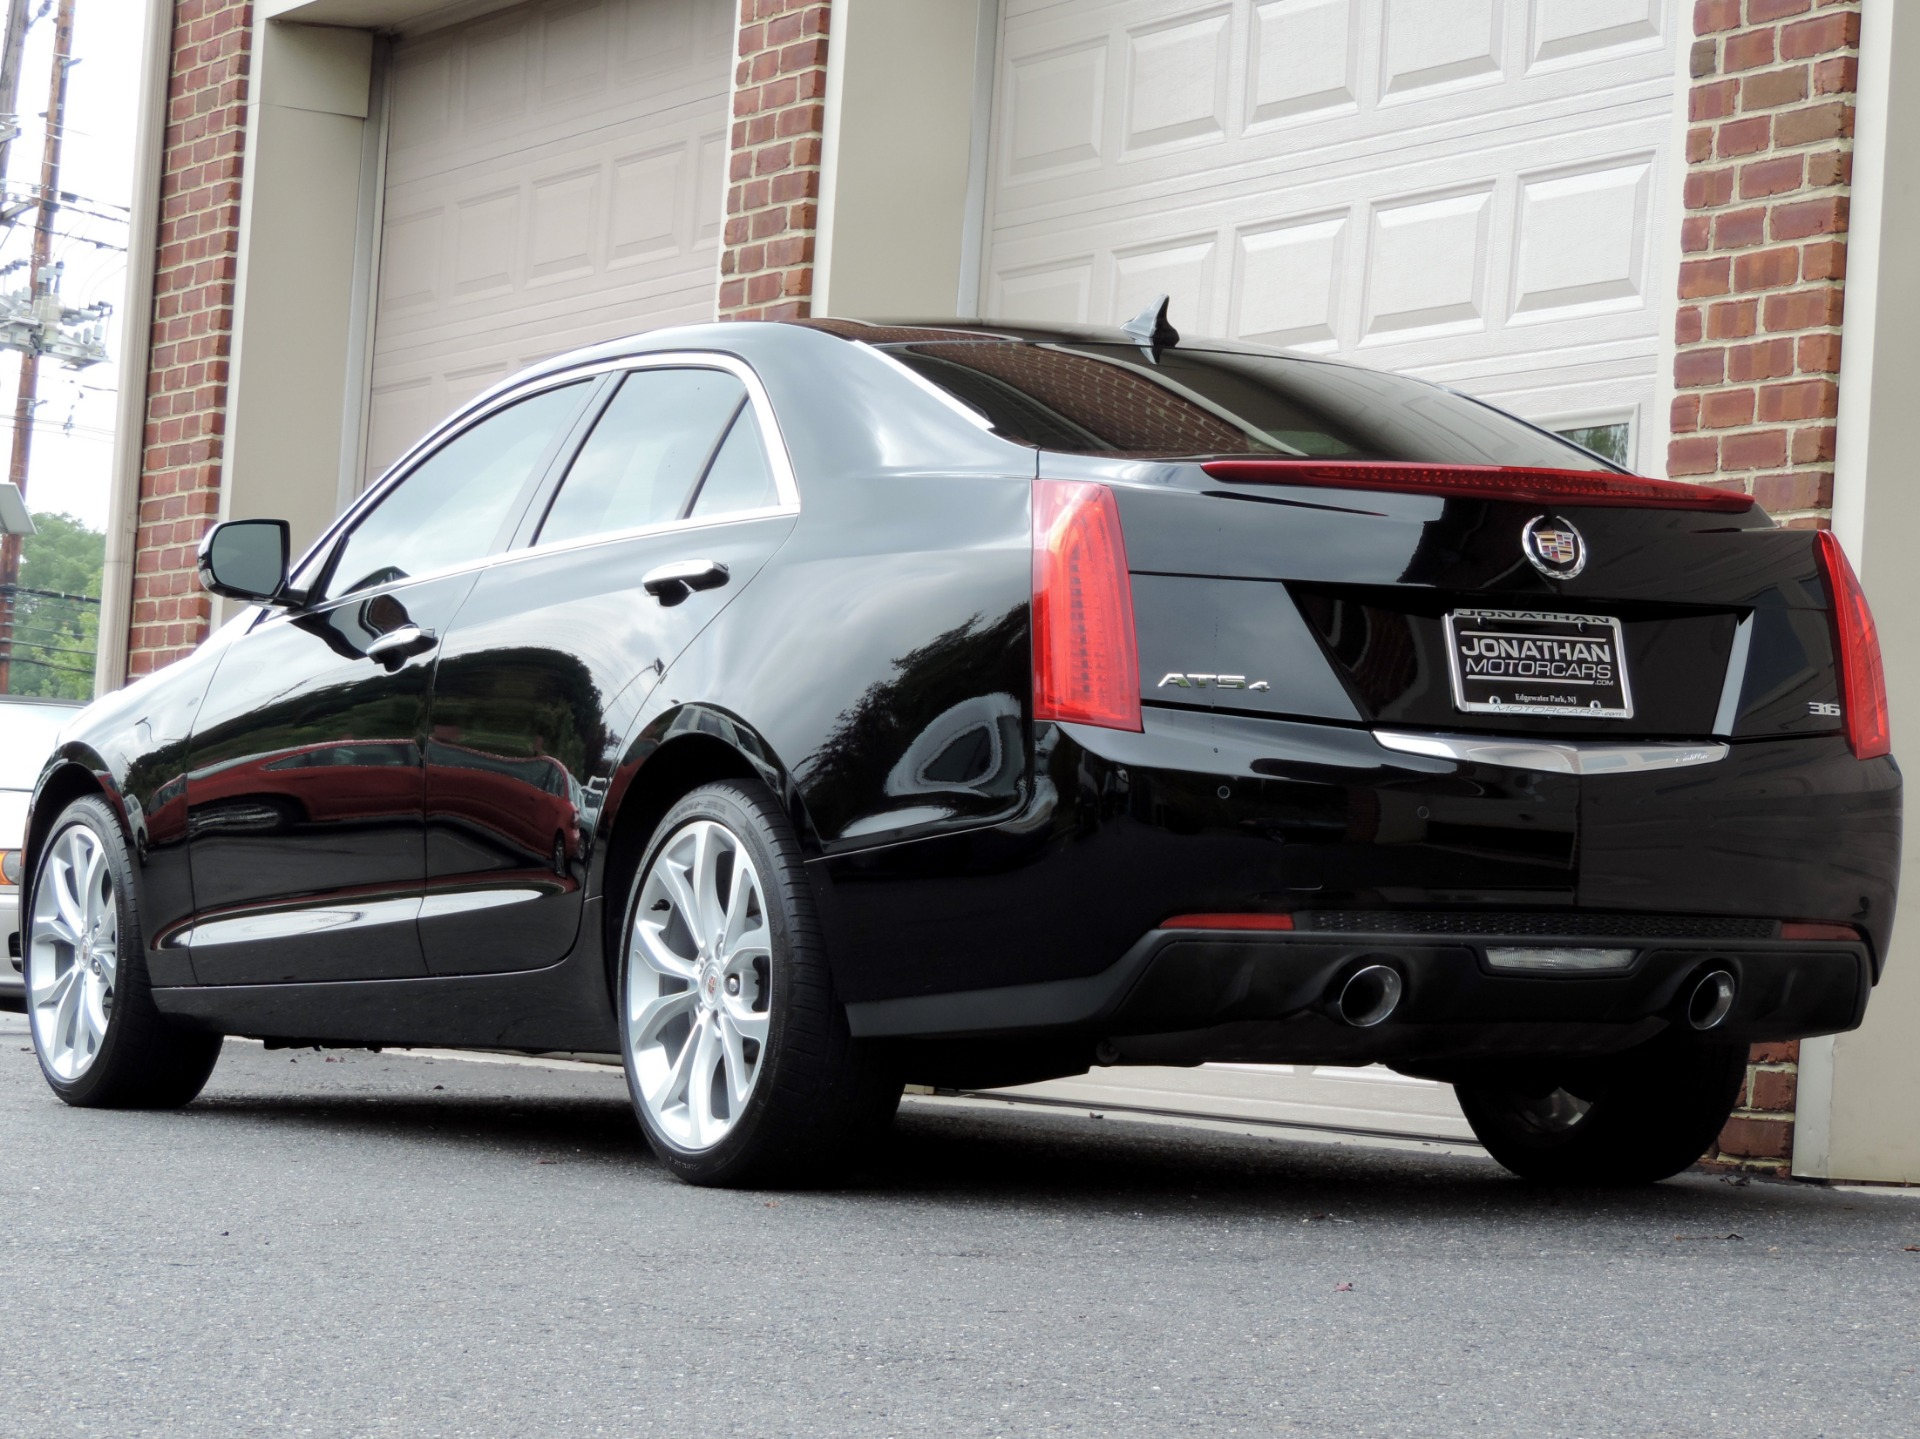 2014 cadillac ats 3 6l premium stock 194310 for sale near edgewater park nj nj cadillac dealer. Black Bedroom Furniture Sets. Home Design Ideas